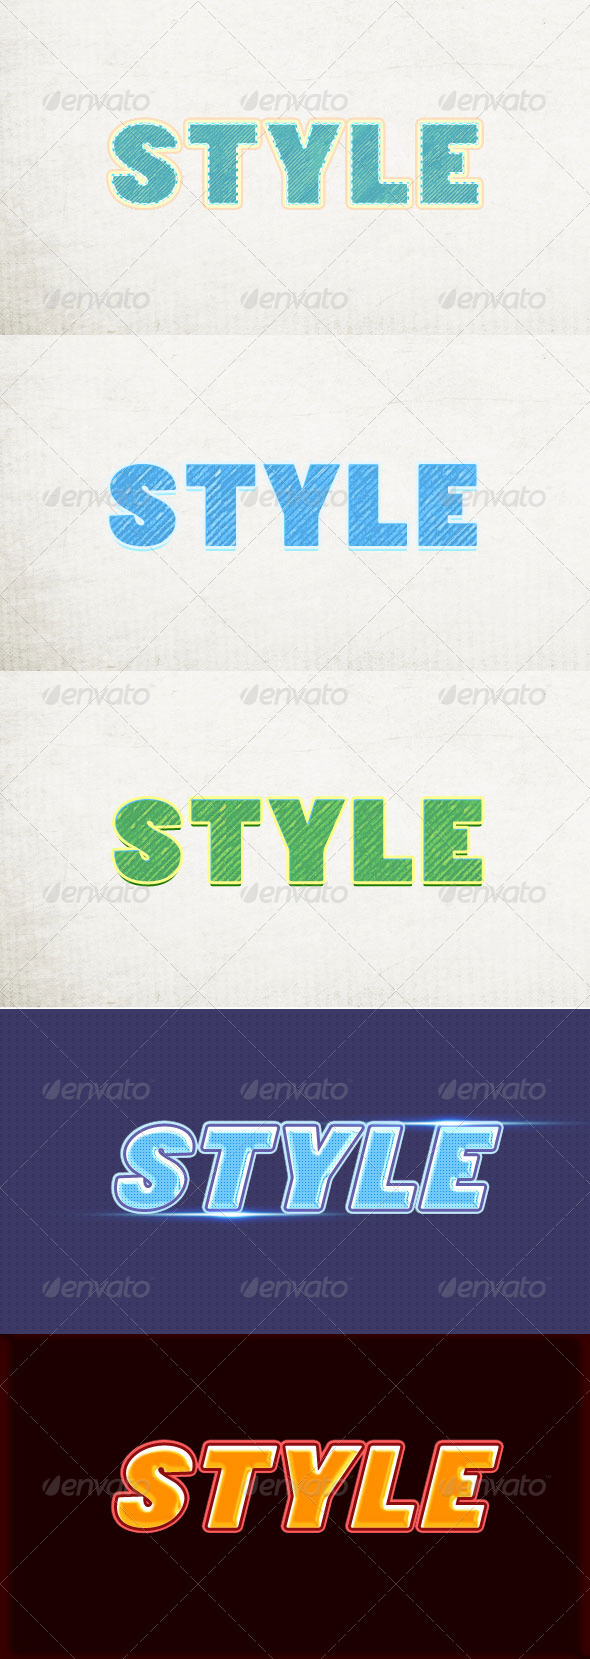 5 Sketch Text Style - Text Effects Styles